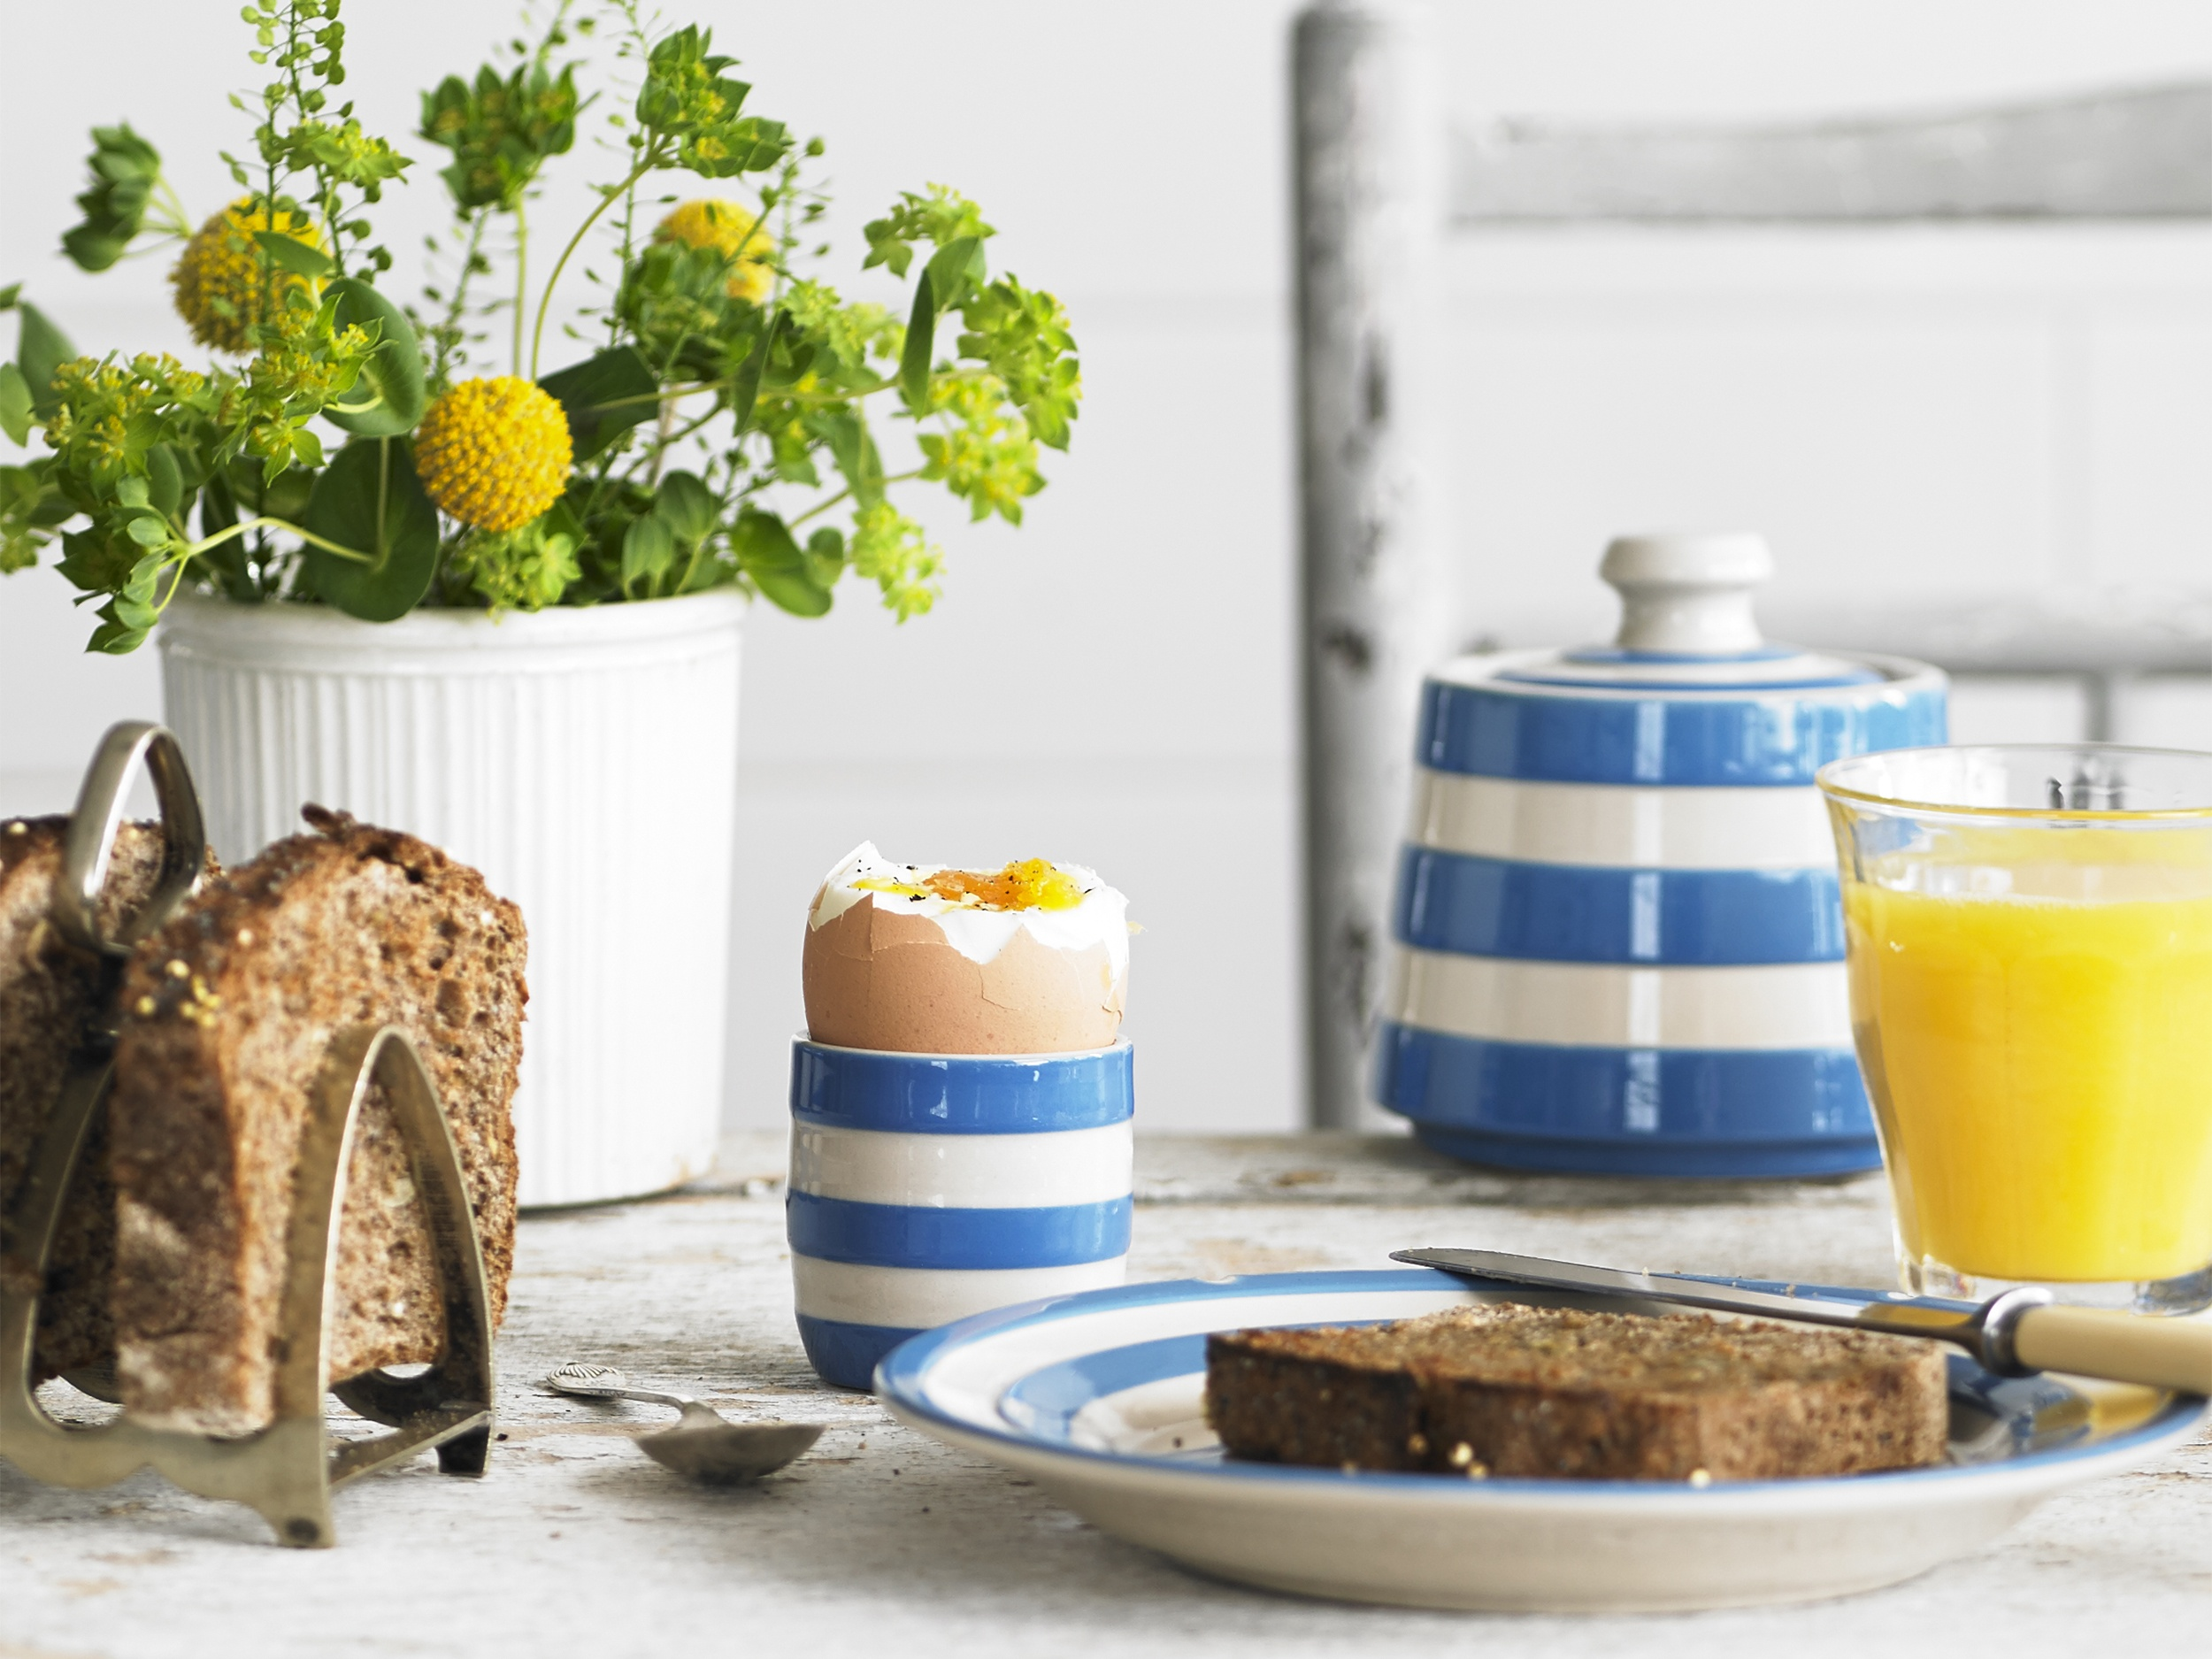 Start your day the Cornishware way!